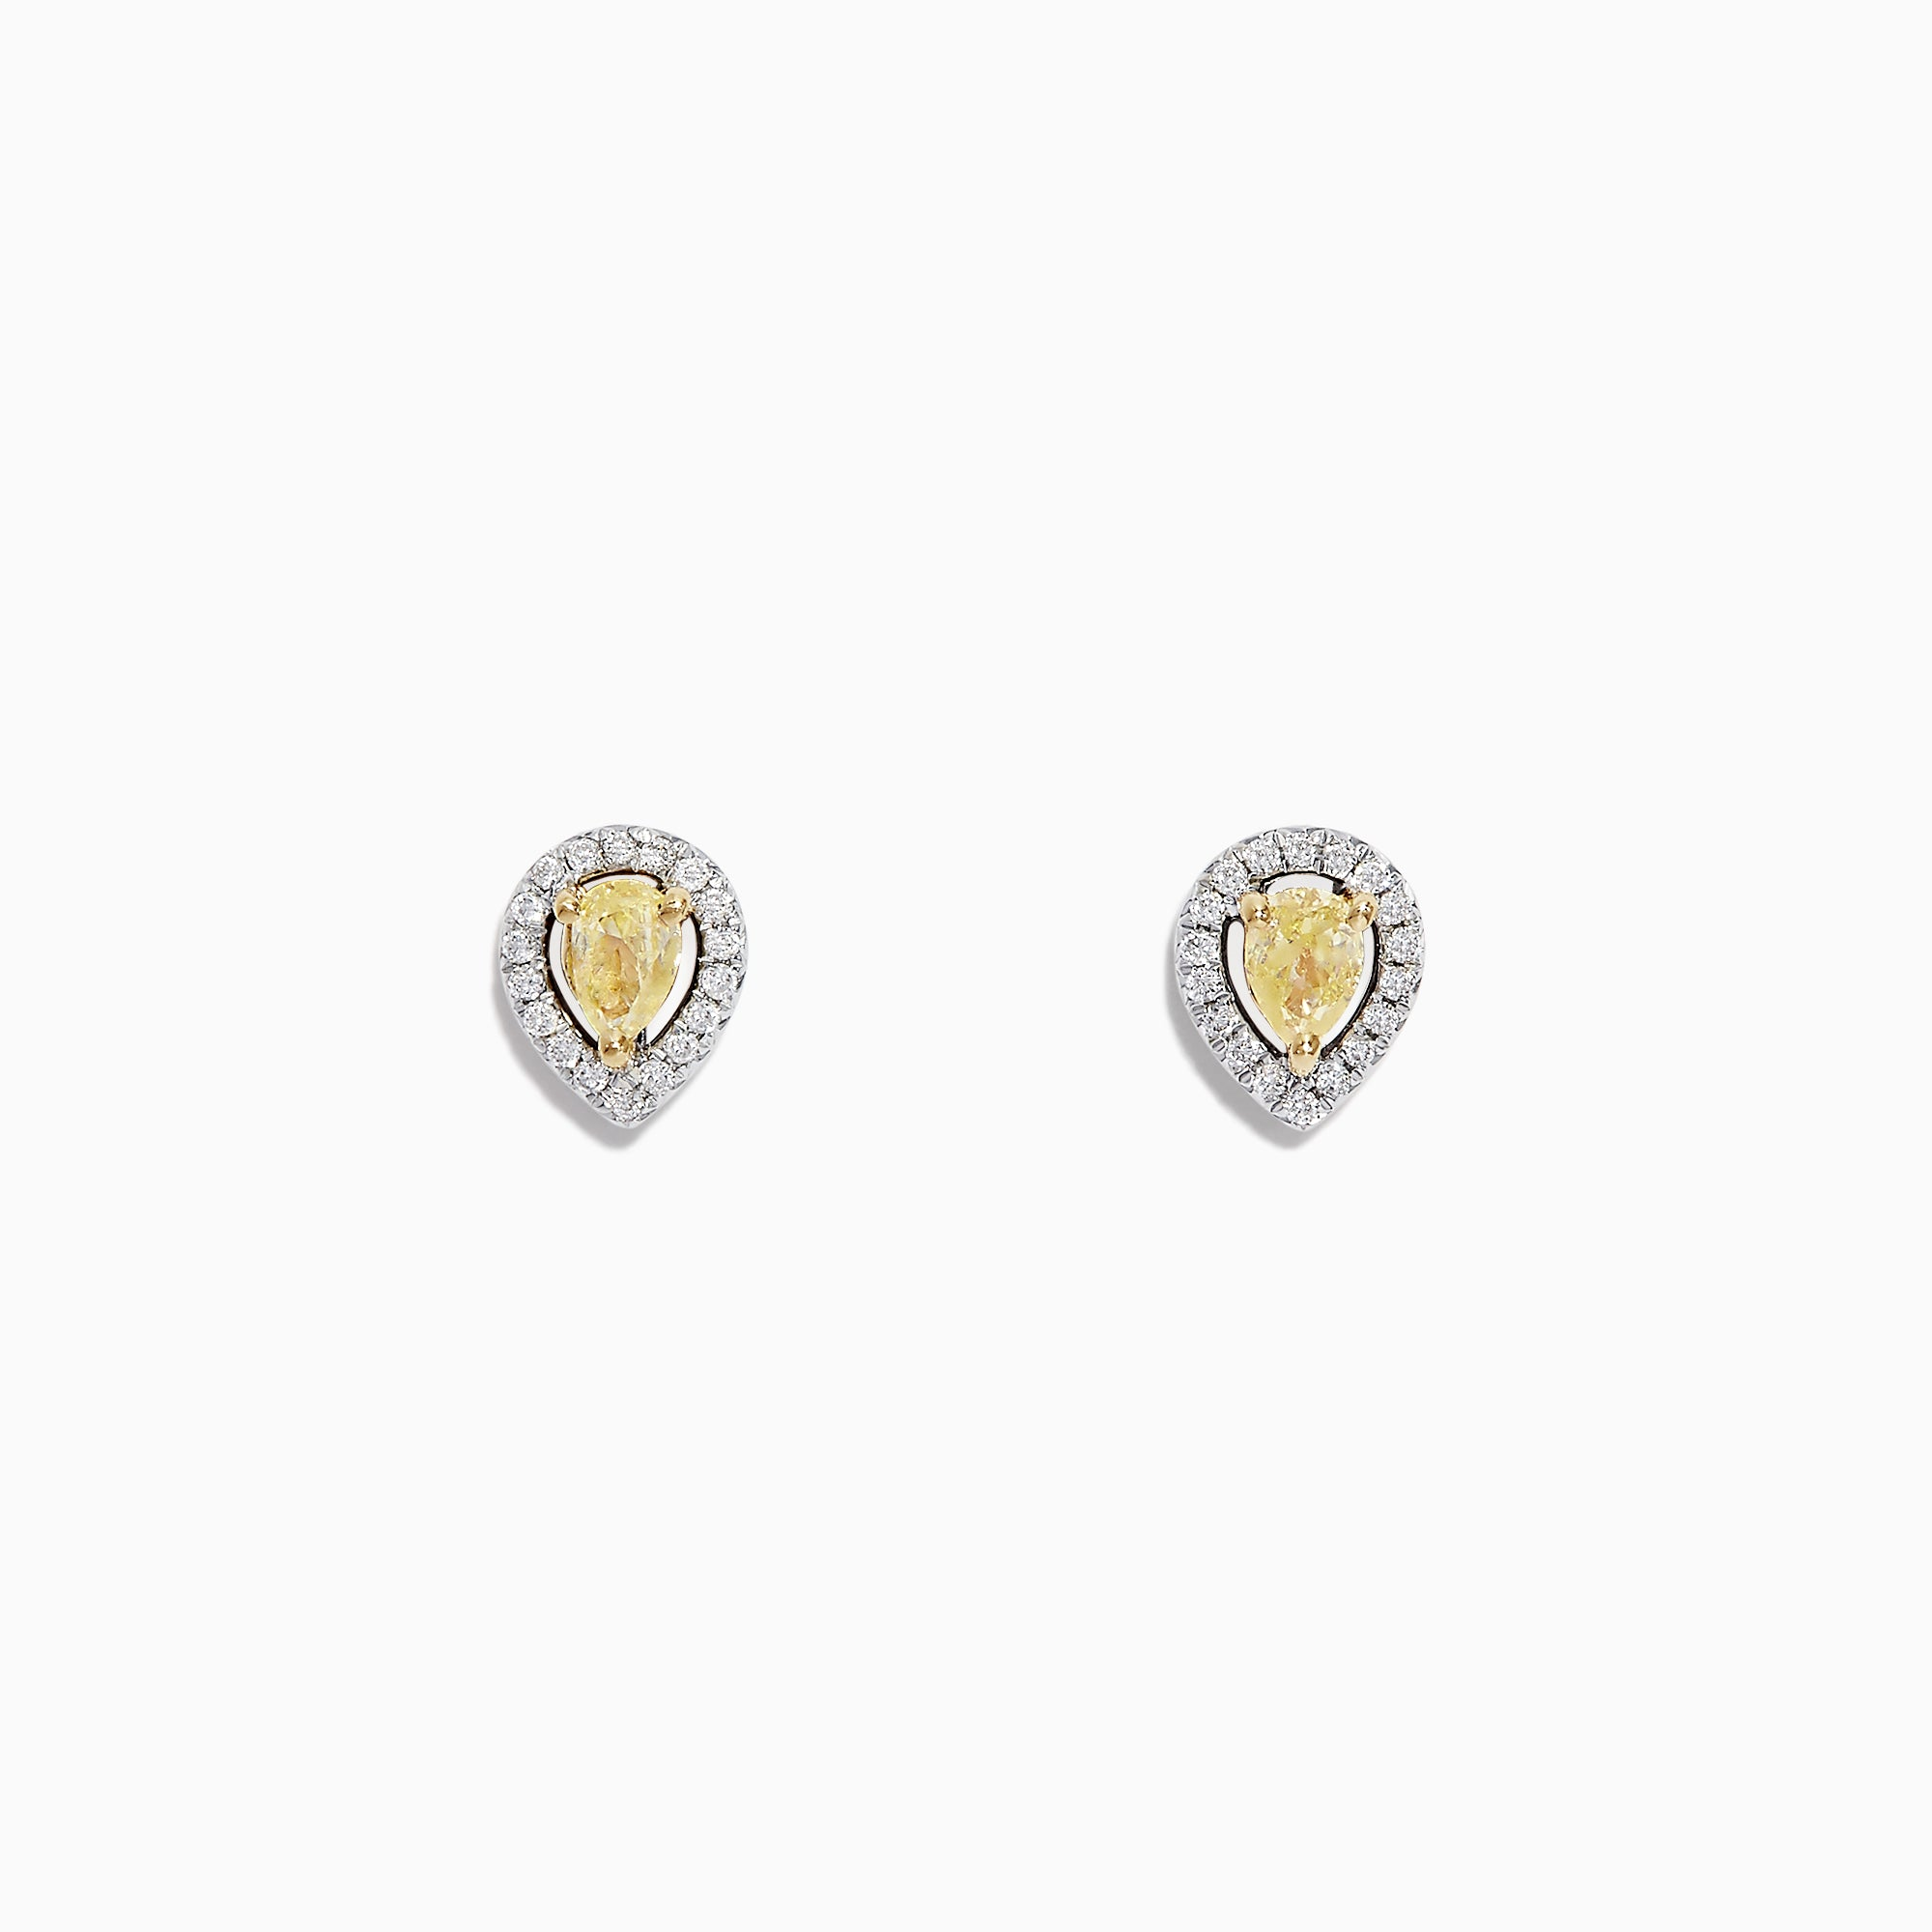 Effy Canare 18K Two Tone Gold Yellow and White Diamond Earrings, 0.36 TCW